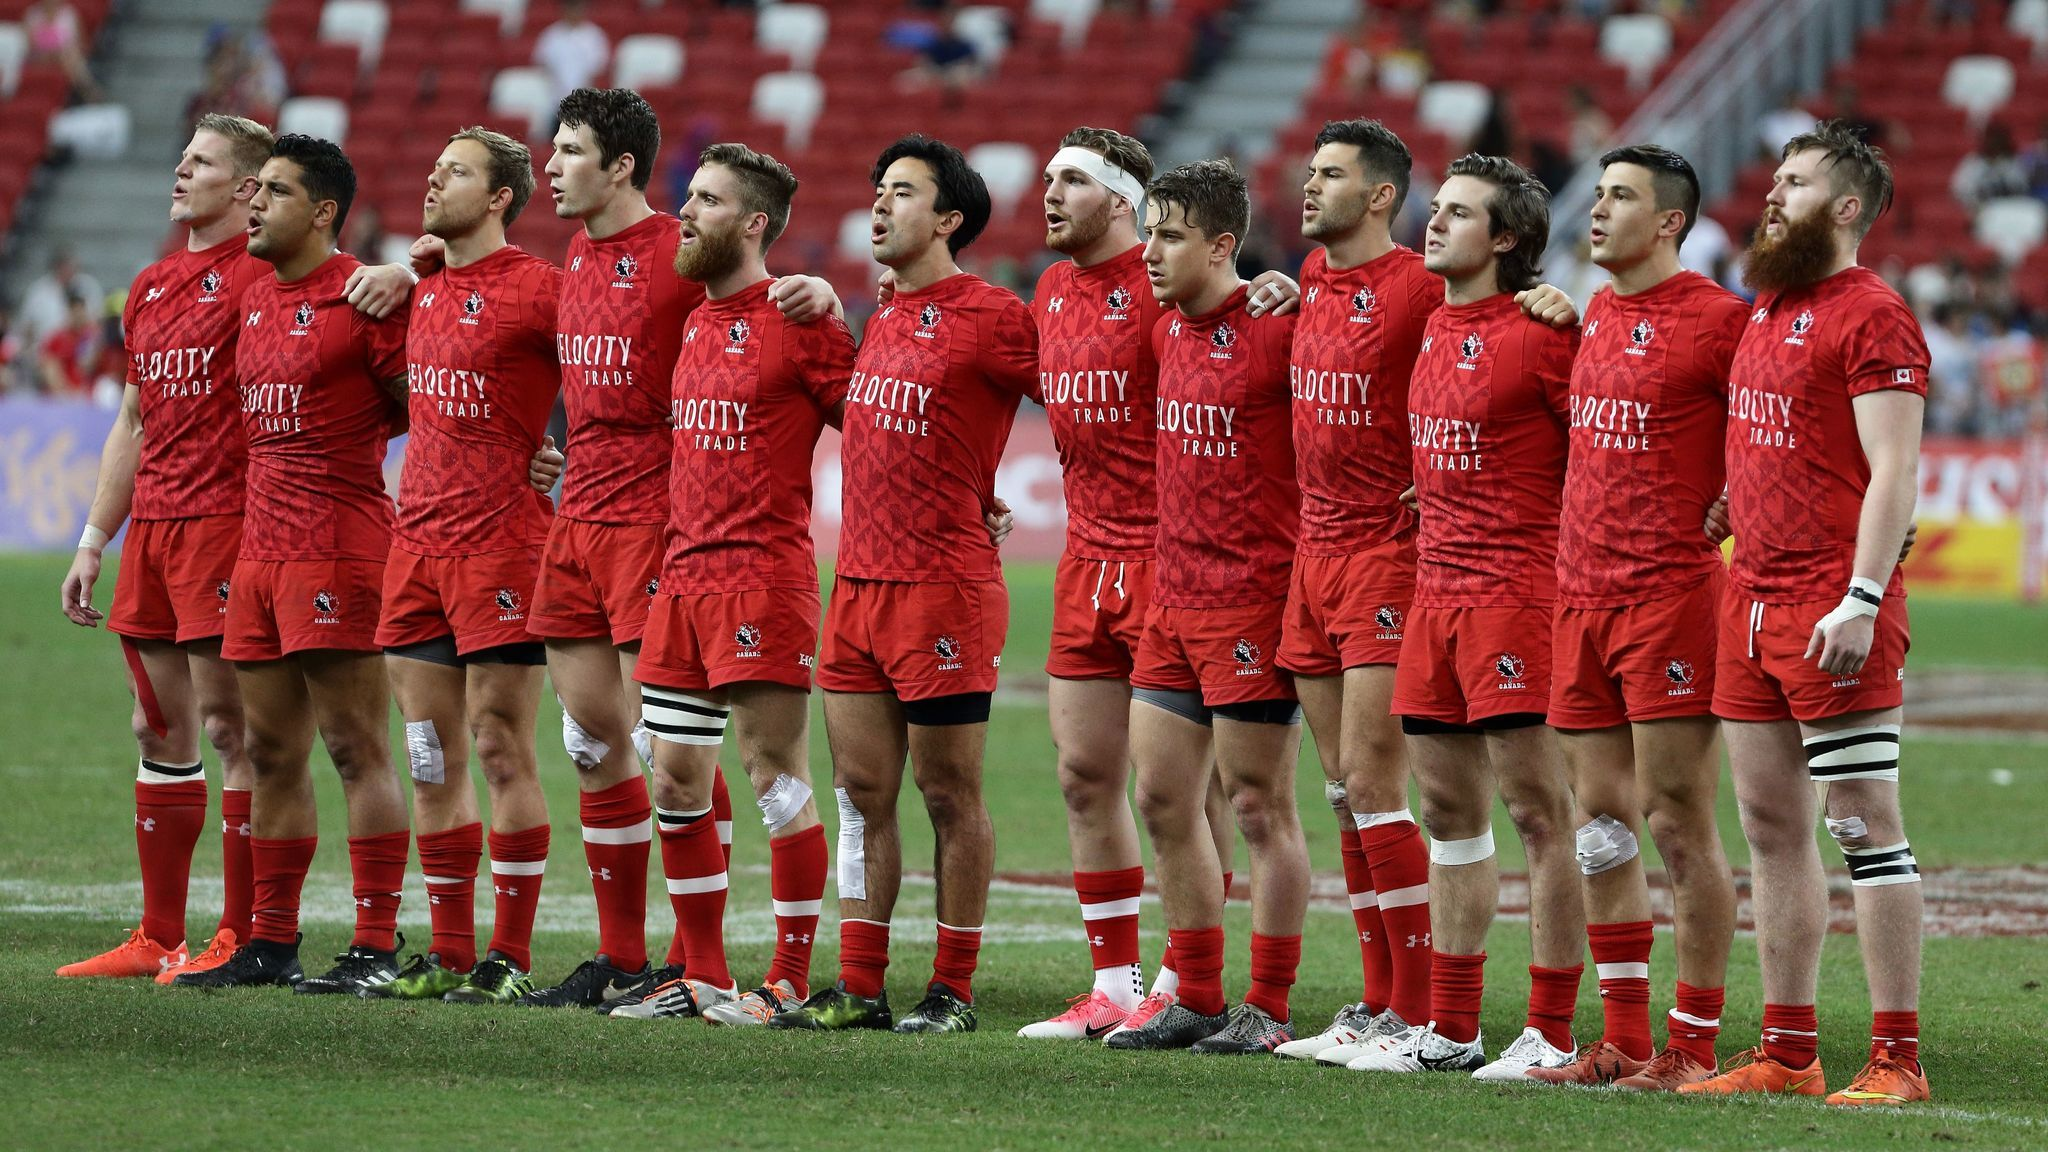 Team Canada sings the national anthem during the Cup Final 2017 Singapore Sevens match between USA and Canada.